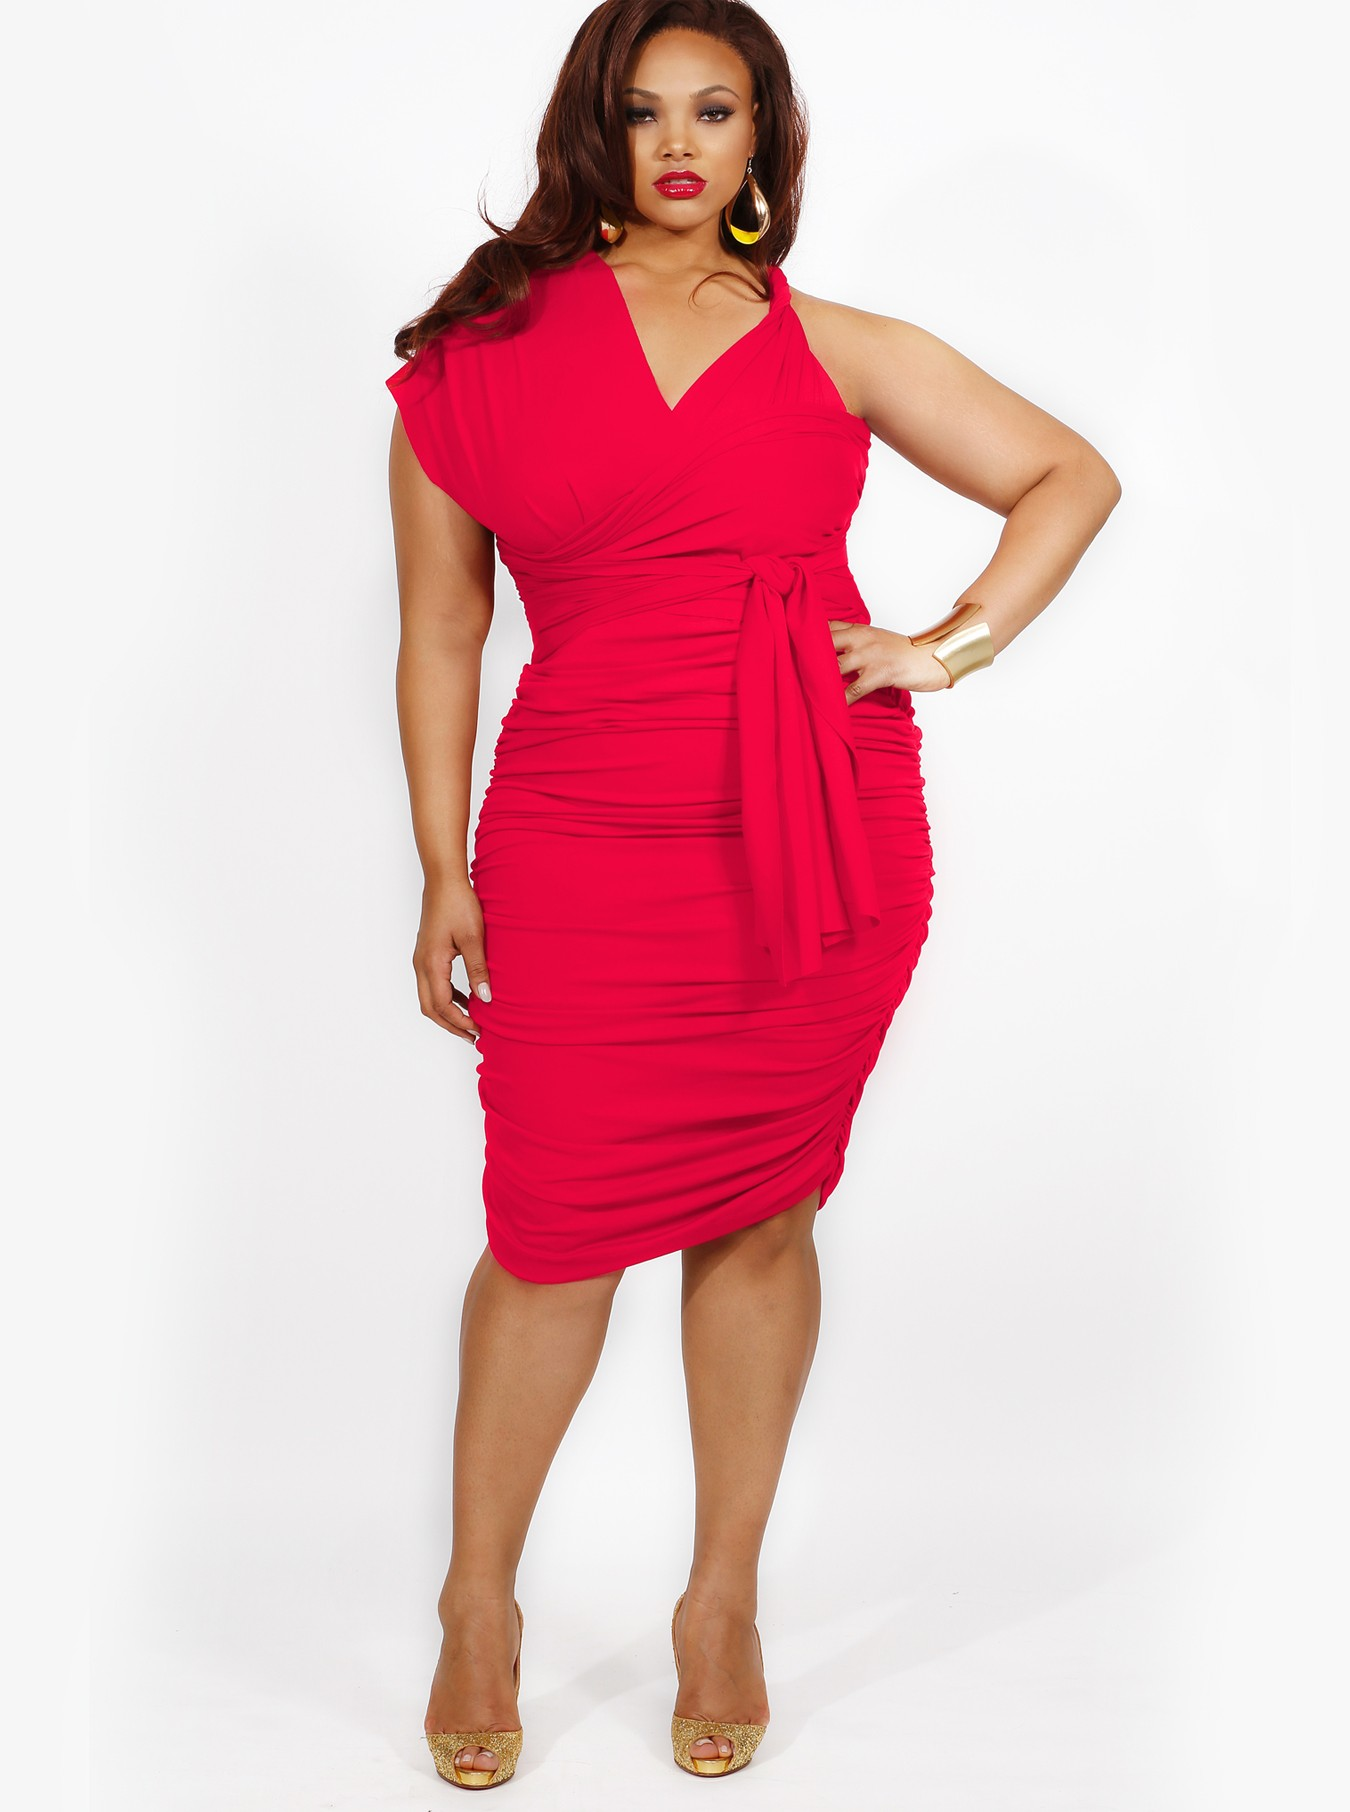 Coral colored plus size cocktail dresses